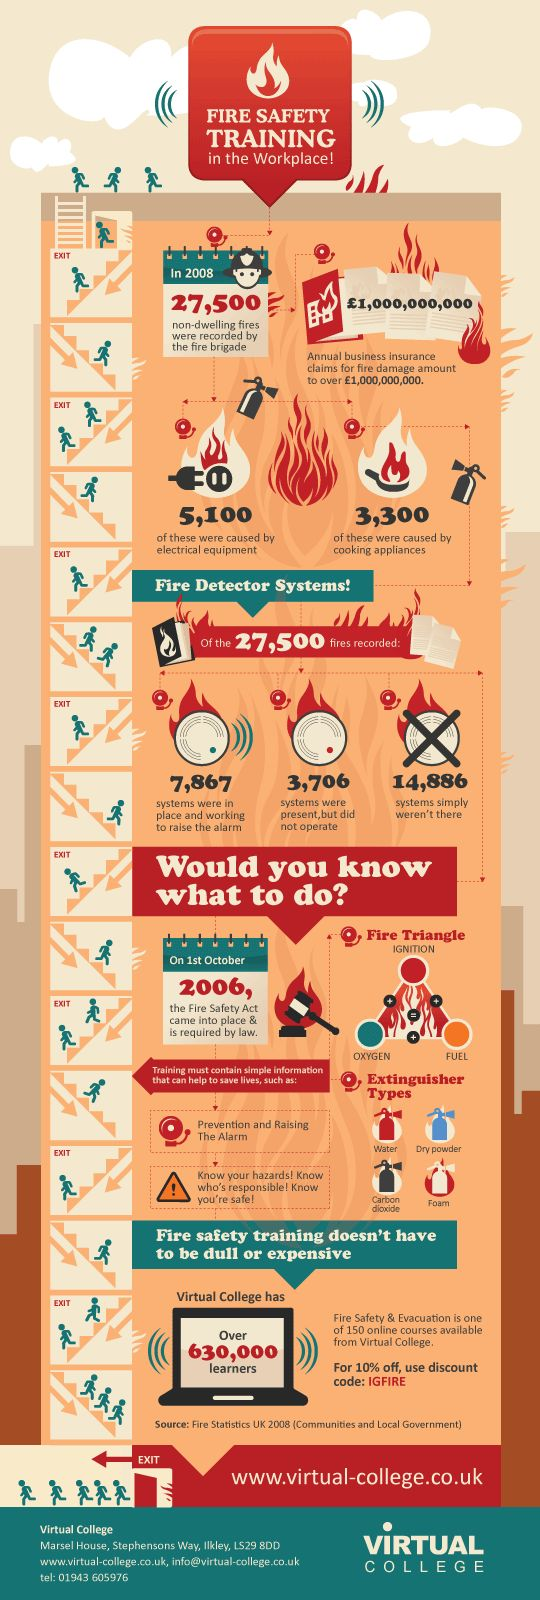 #Fire #Safety in the Workplace